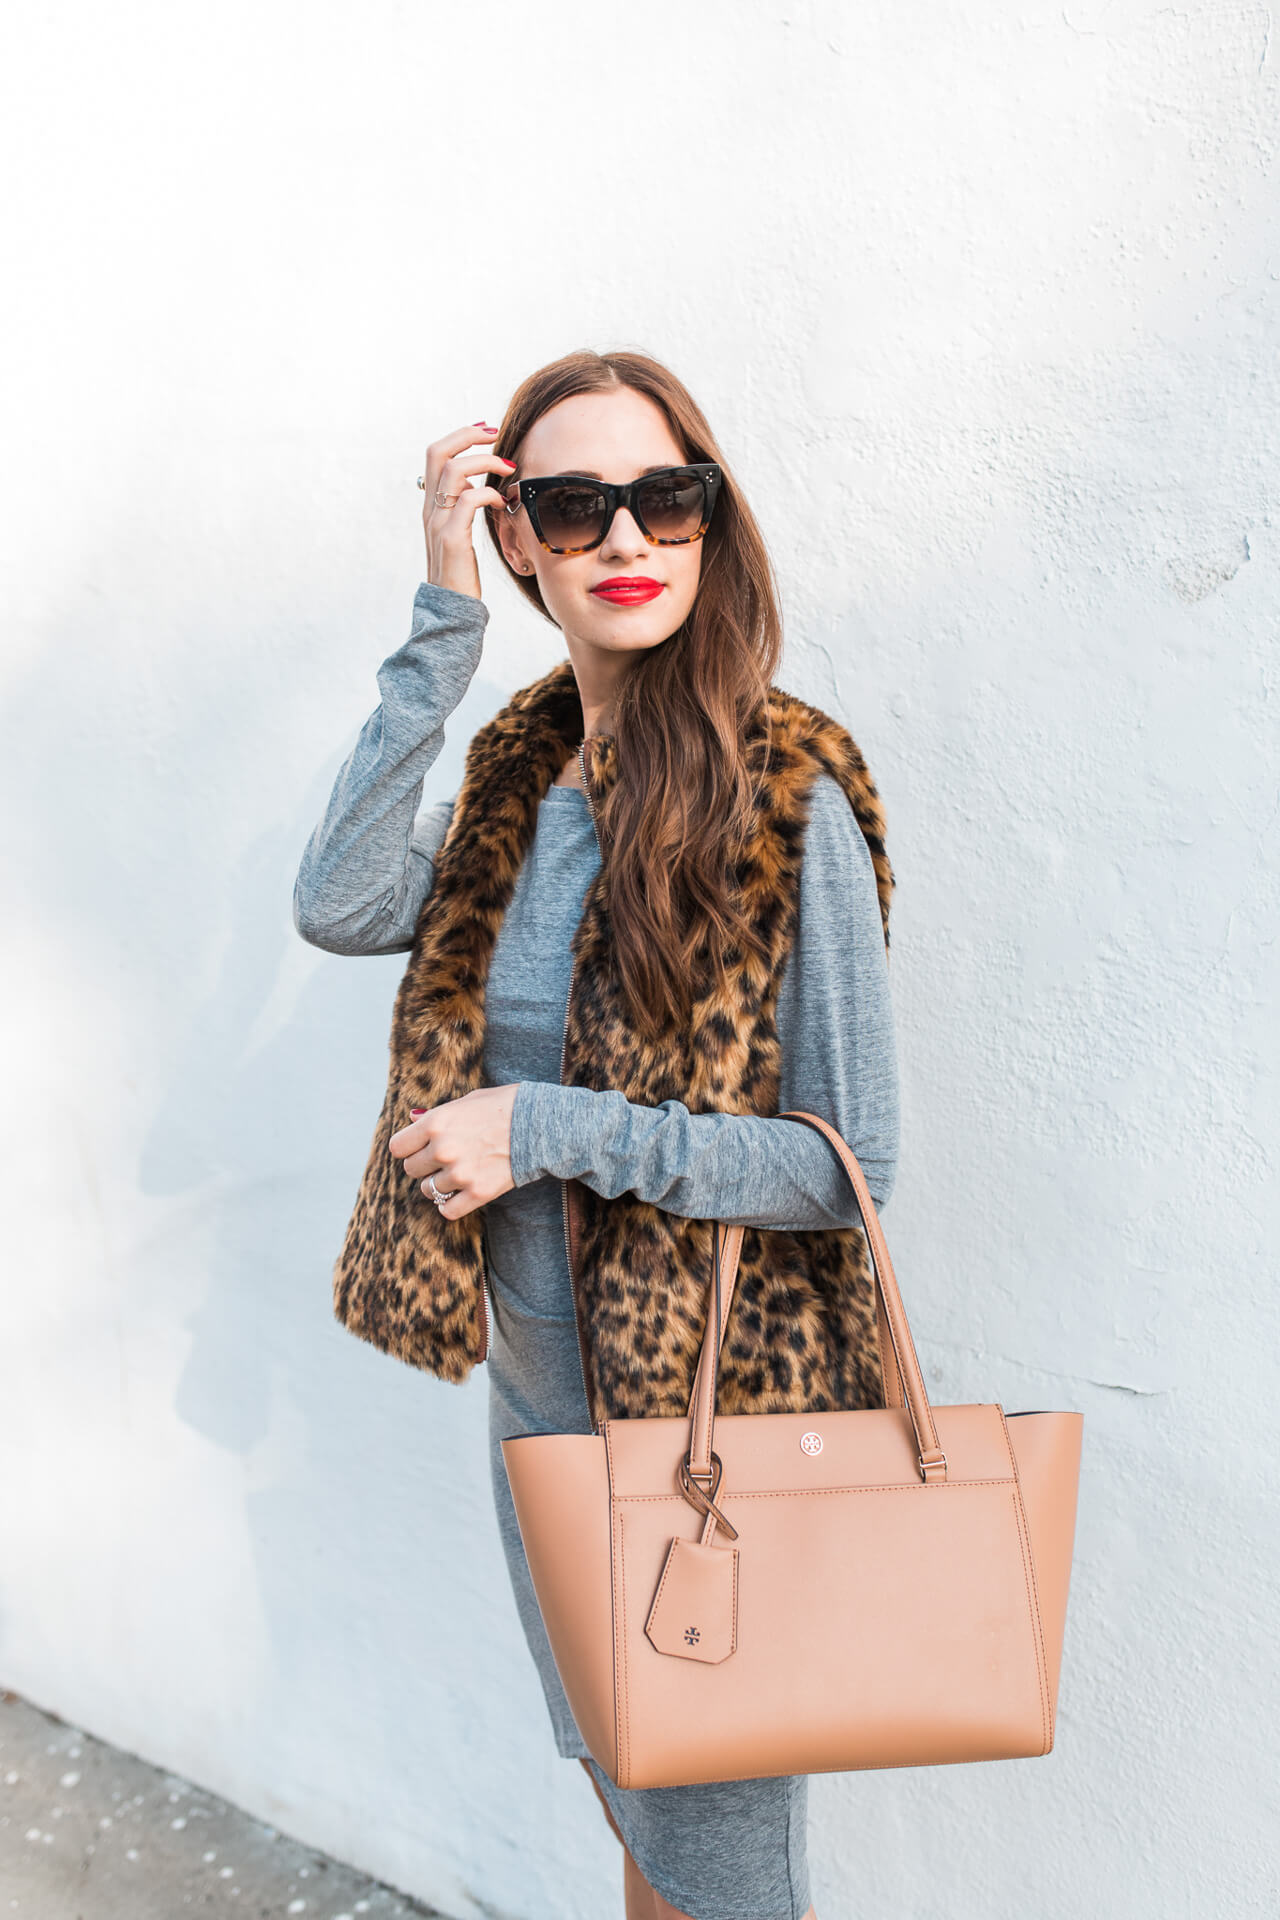 styling a red lipstick look for fall with gray and leopard